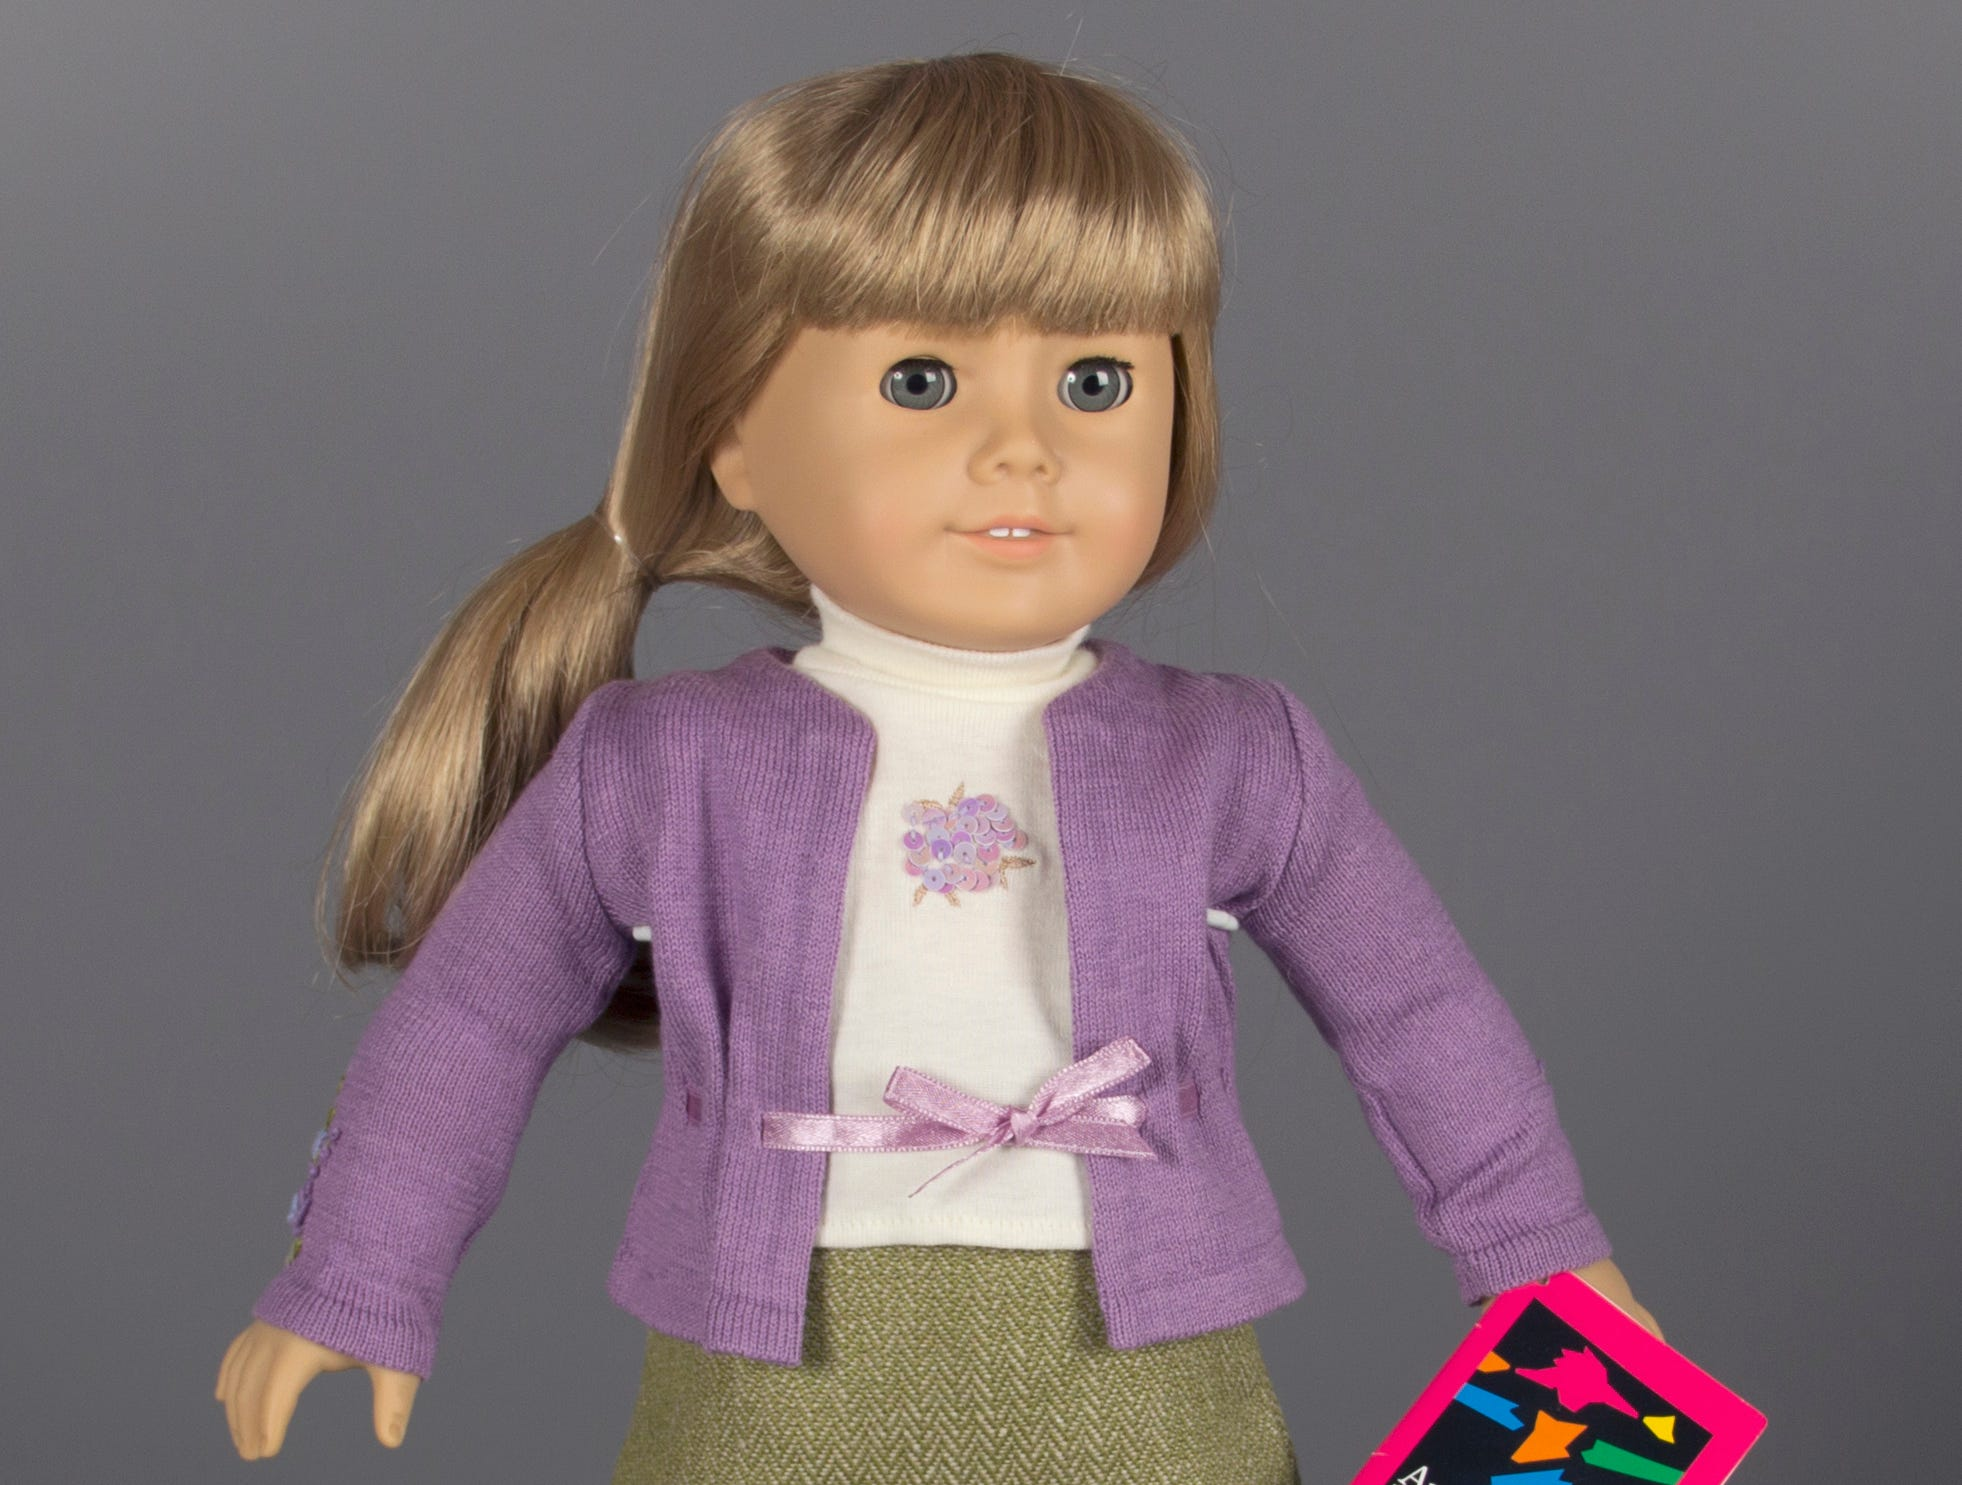 The American Girl doll.